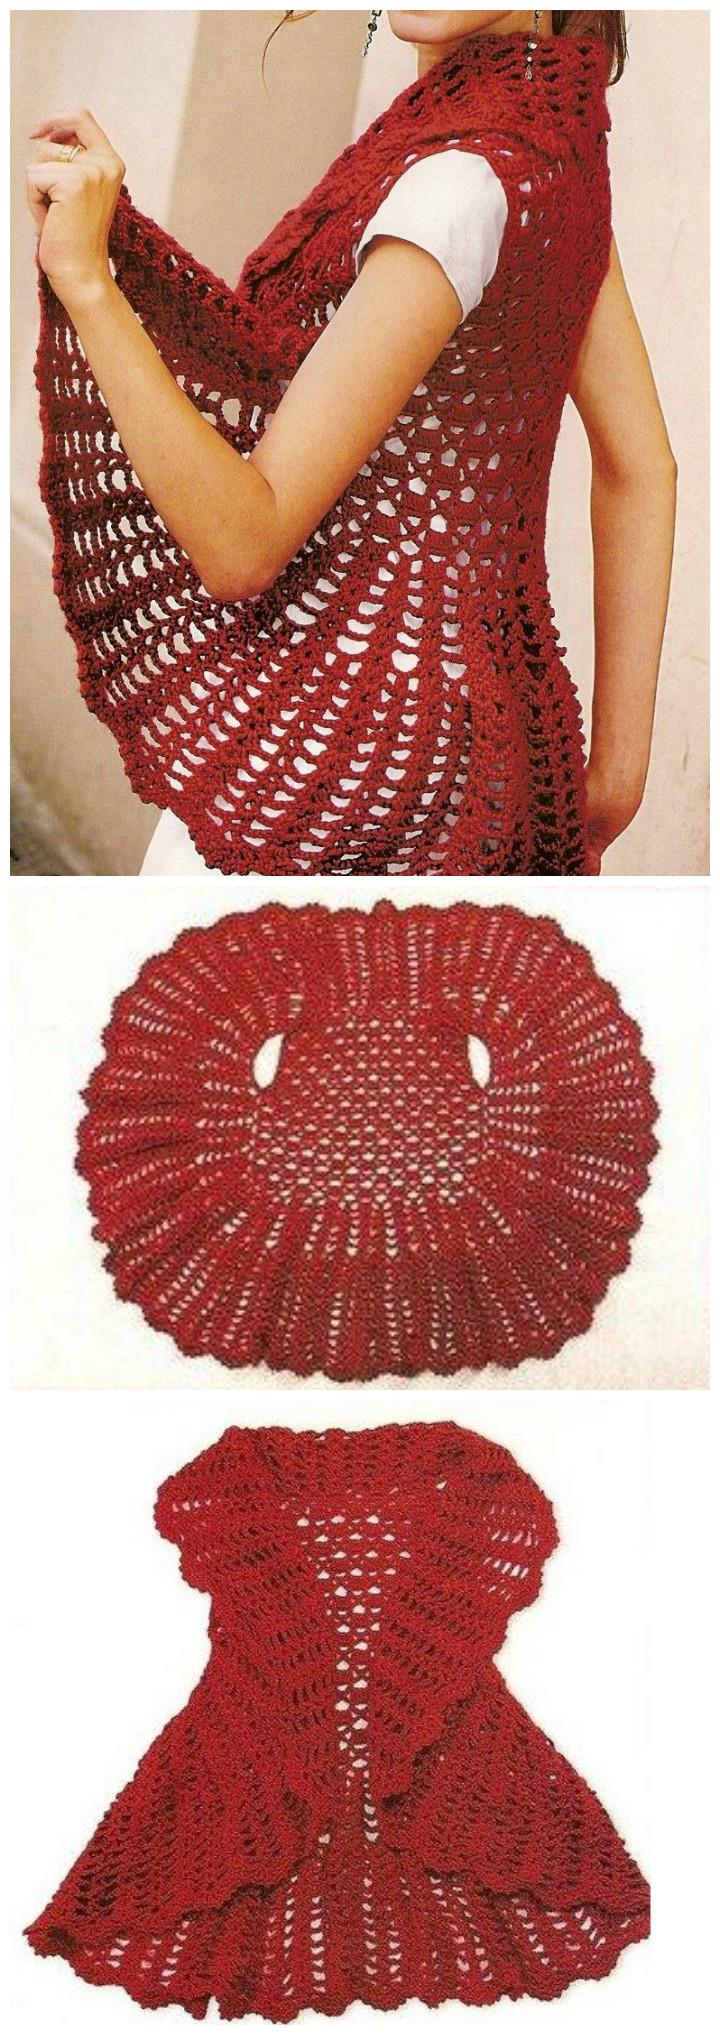 12 Free Crochet Patterns for Circular Vest Jacket